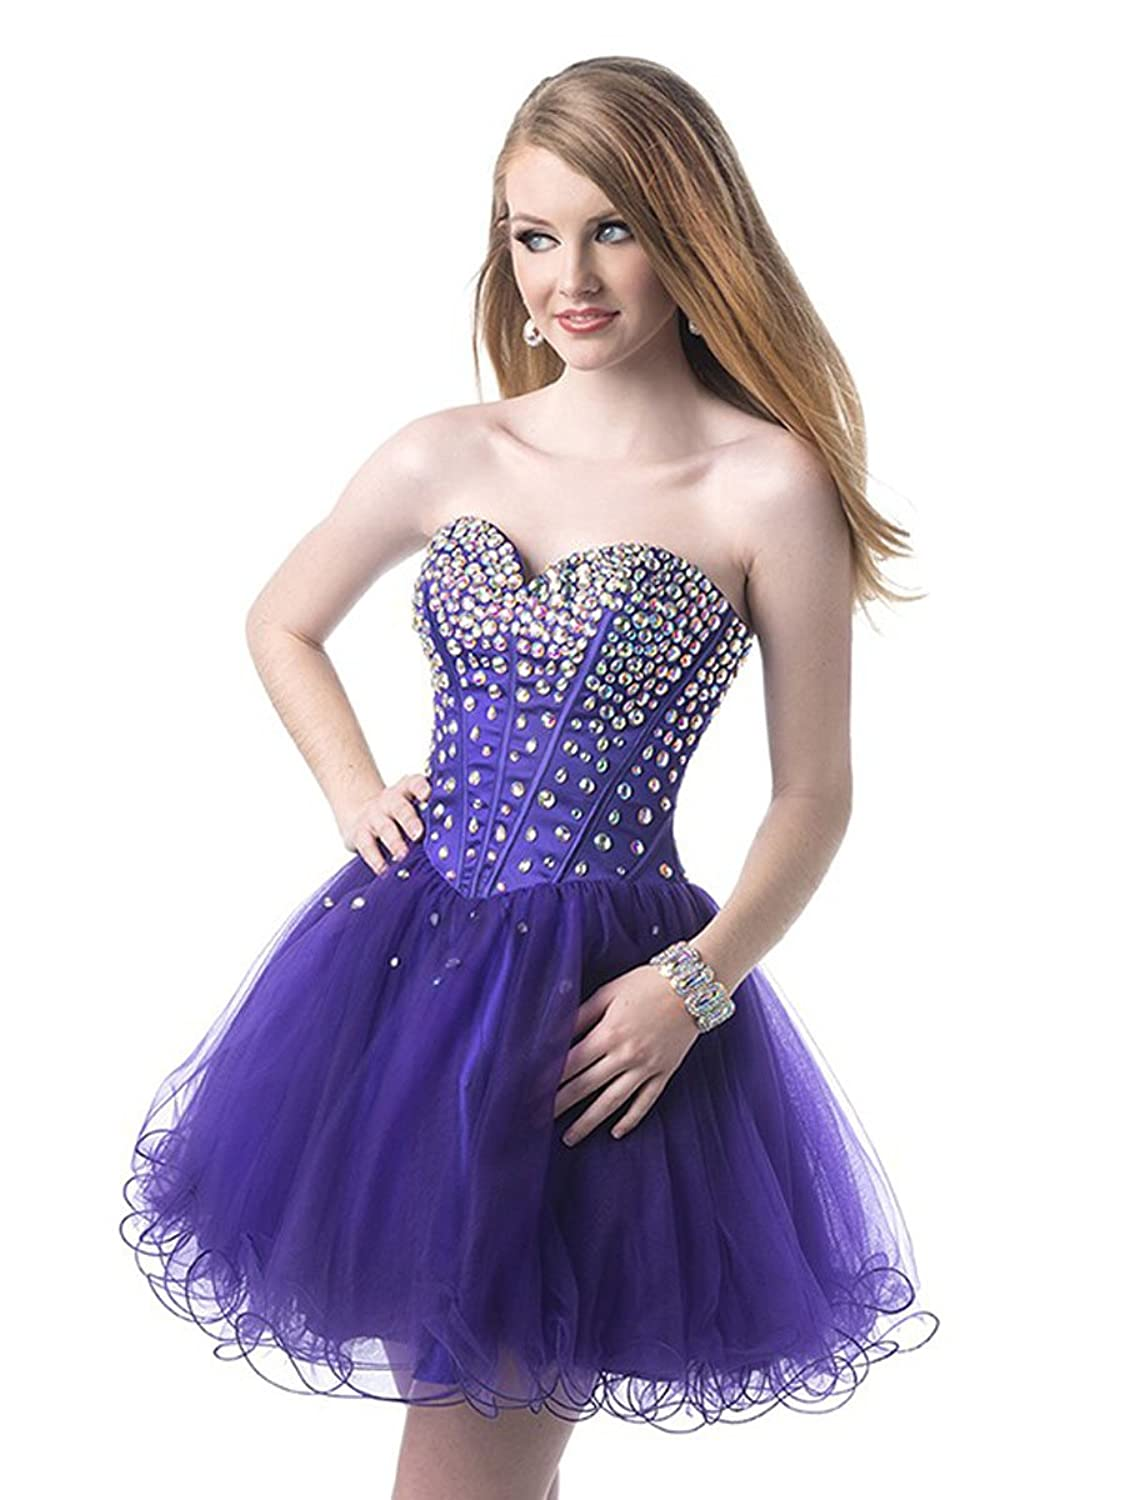 LM Women's Sweetheart Short A-line Tulle Beads Prom Party Homecoming Dresses LM086